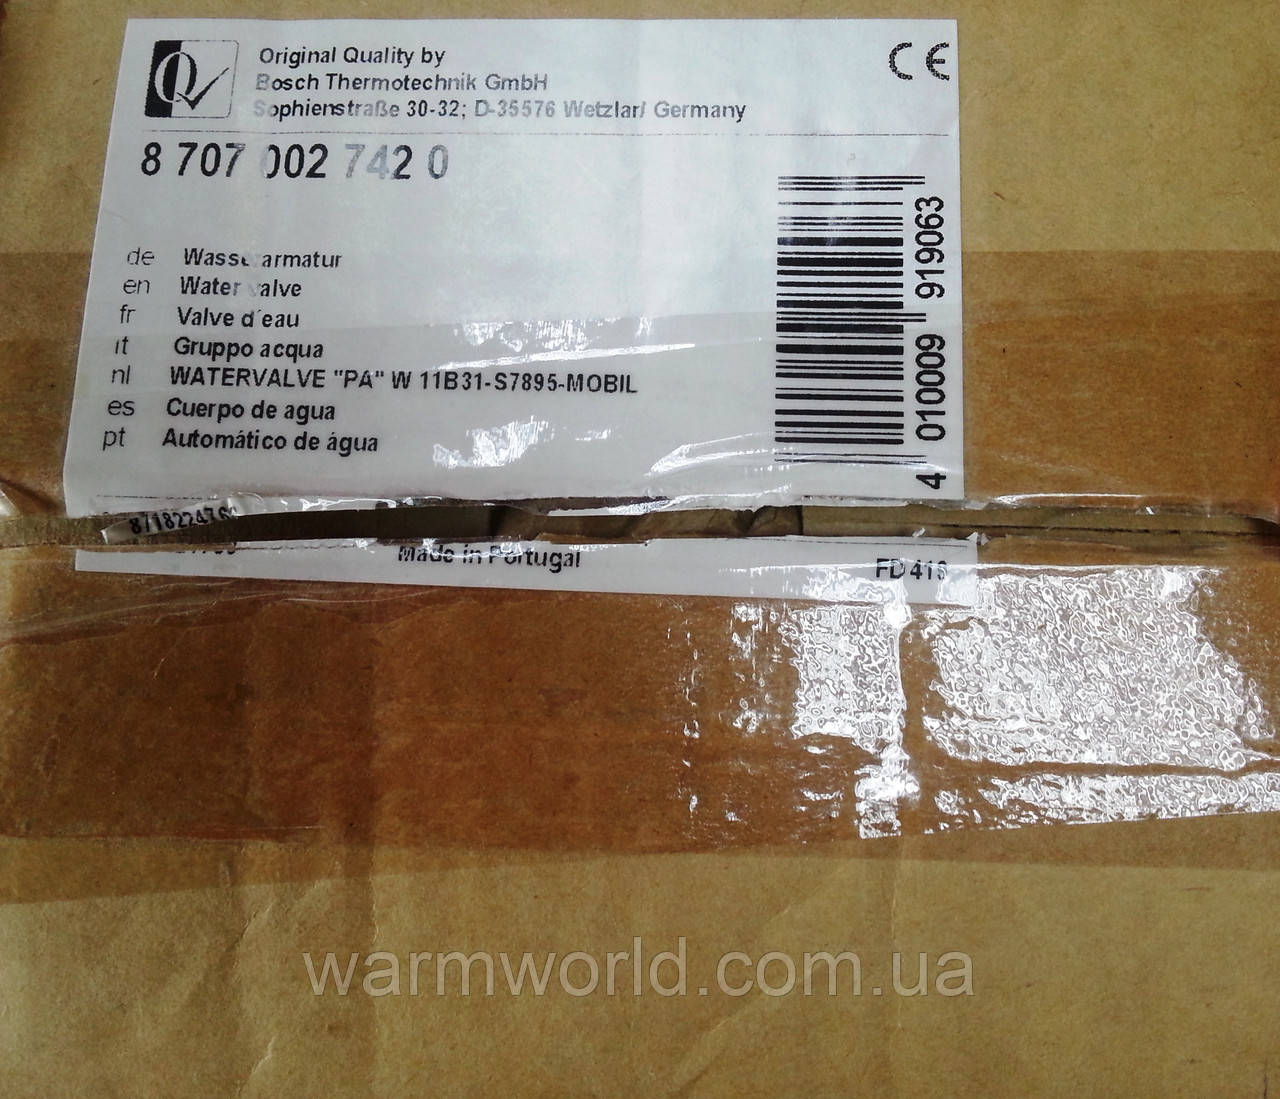 8707002742 Водяна арматура до W10-2P, Bosch, Junkers